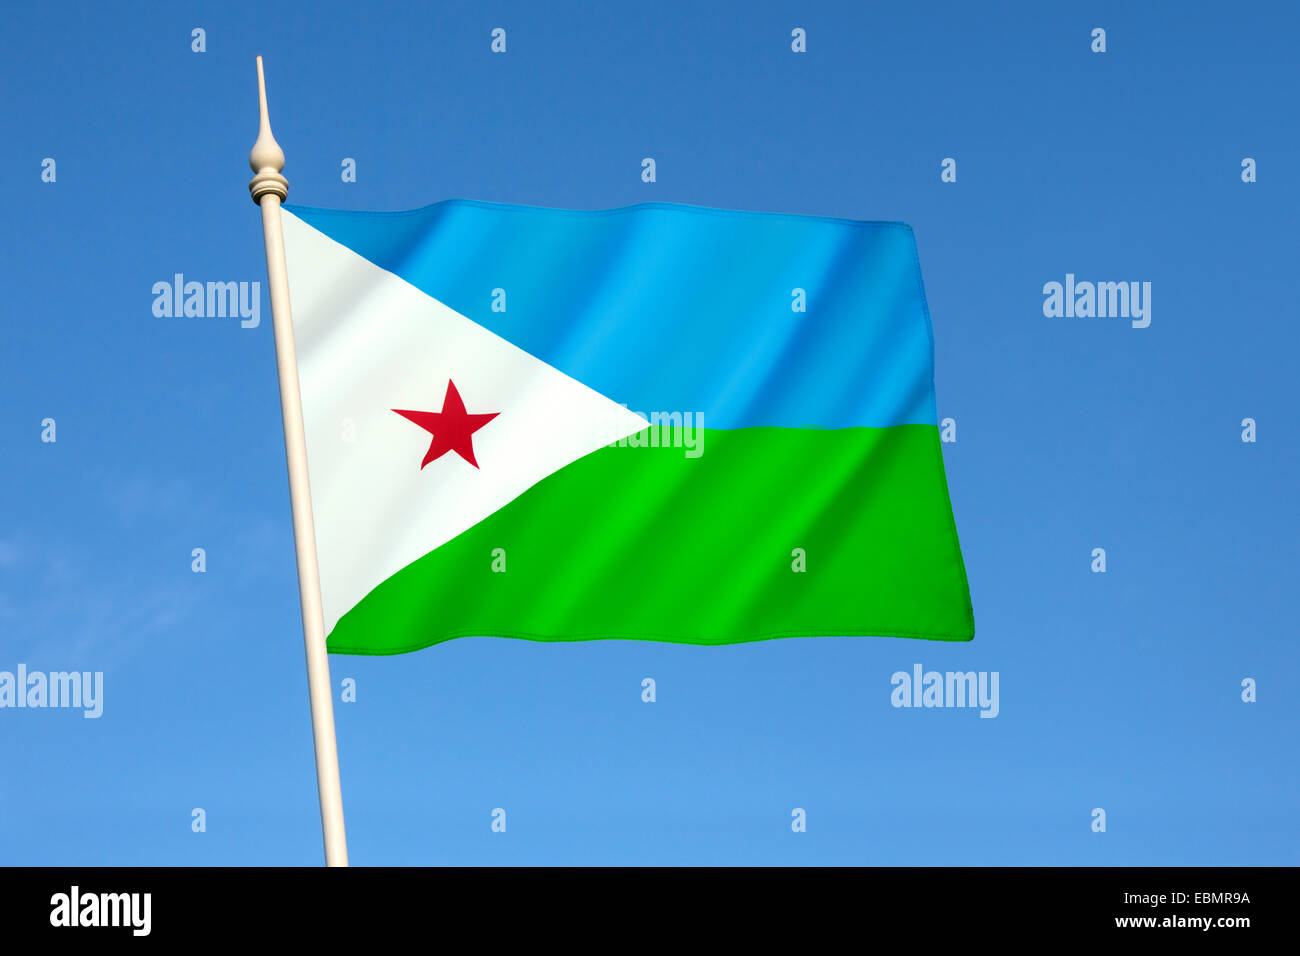 Flag of Djibouti - Stock Image